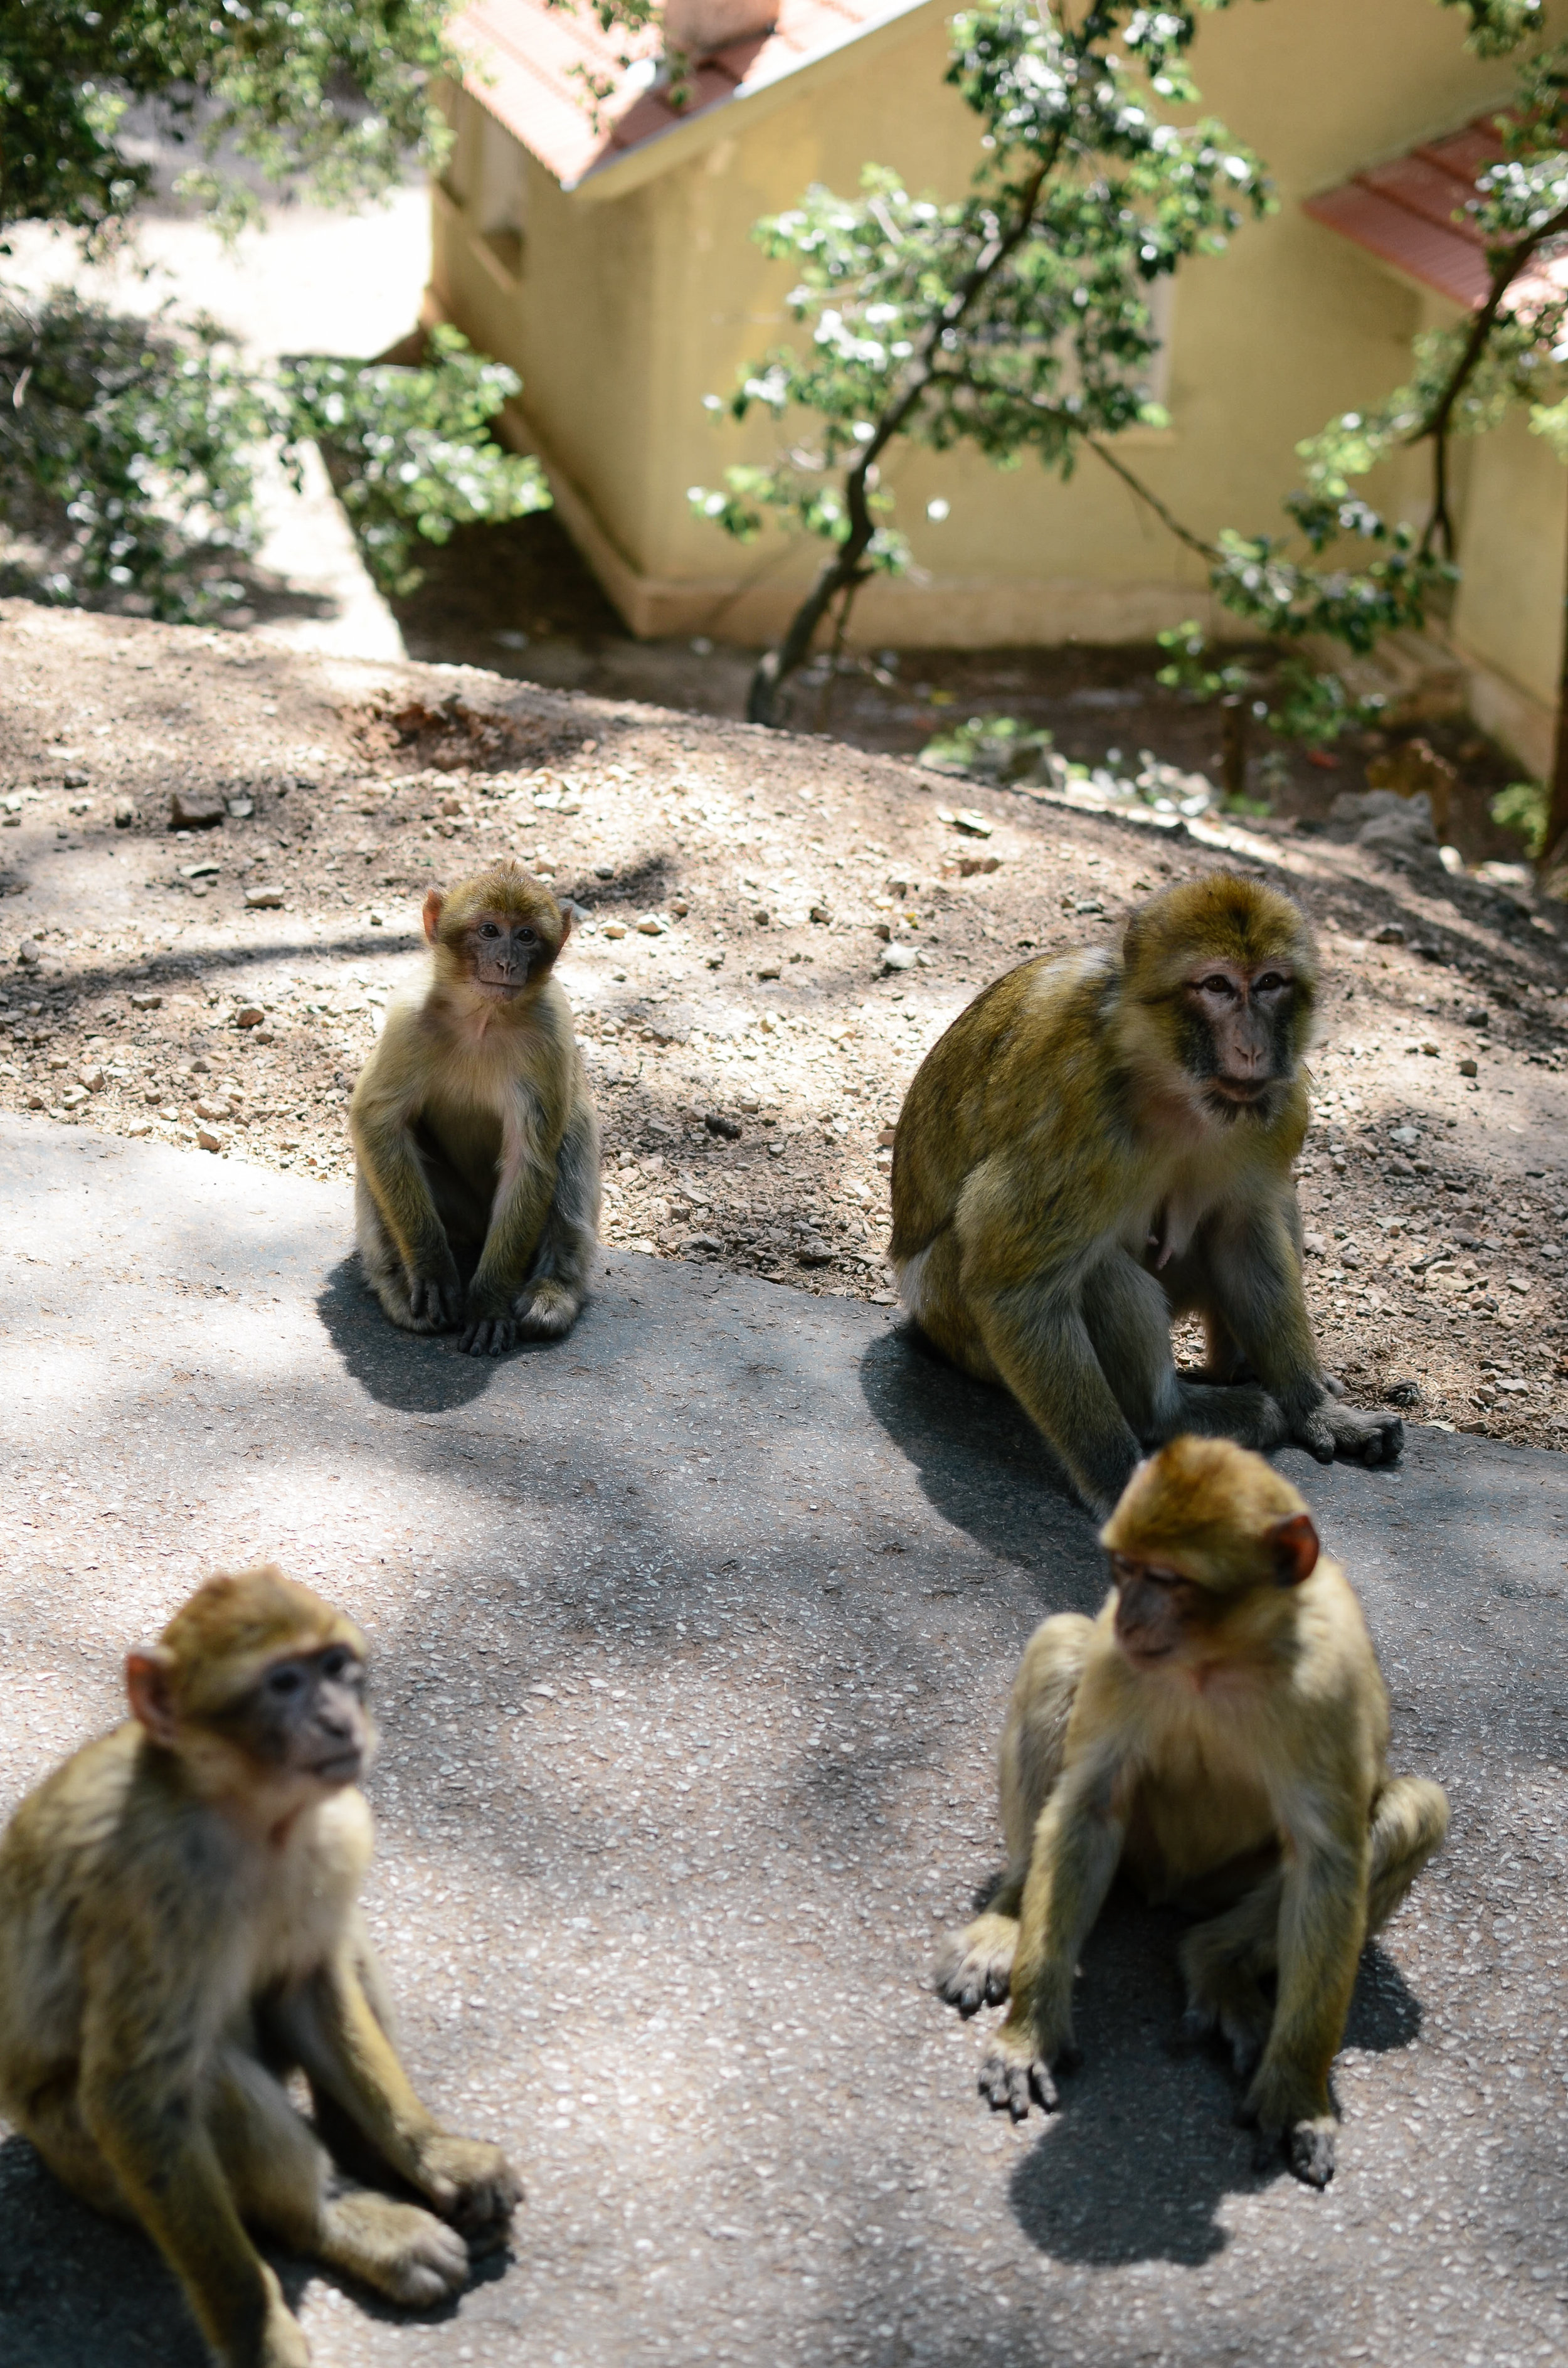 ^^ my first ever monkeys in the wild sighting!